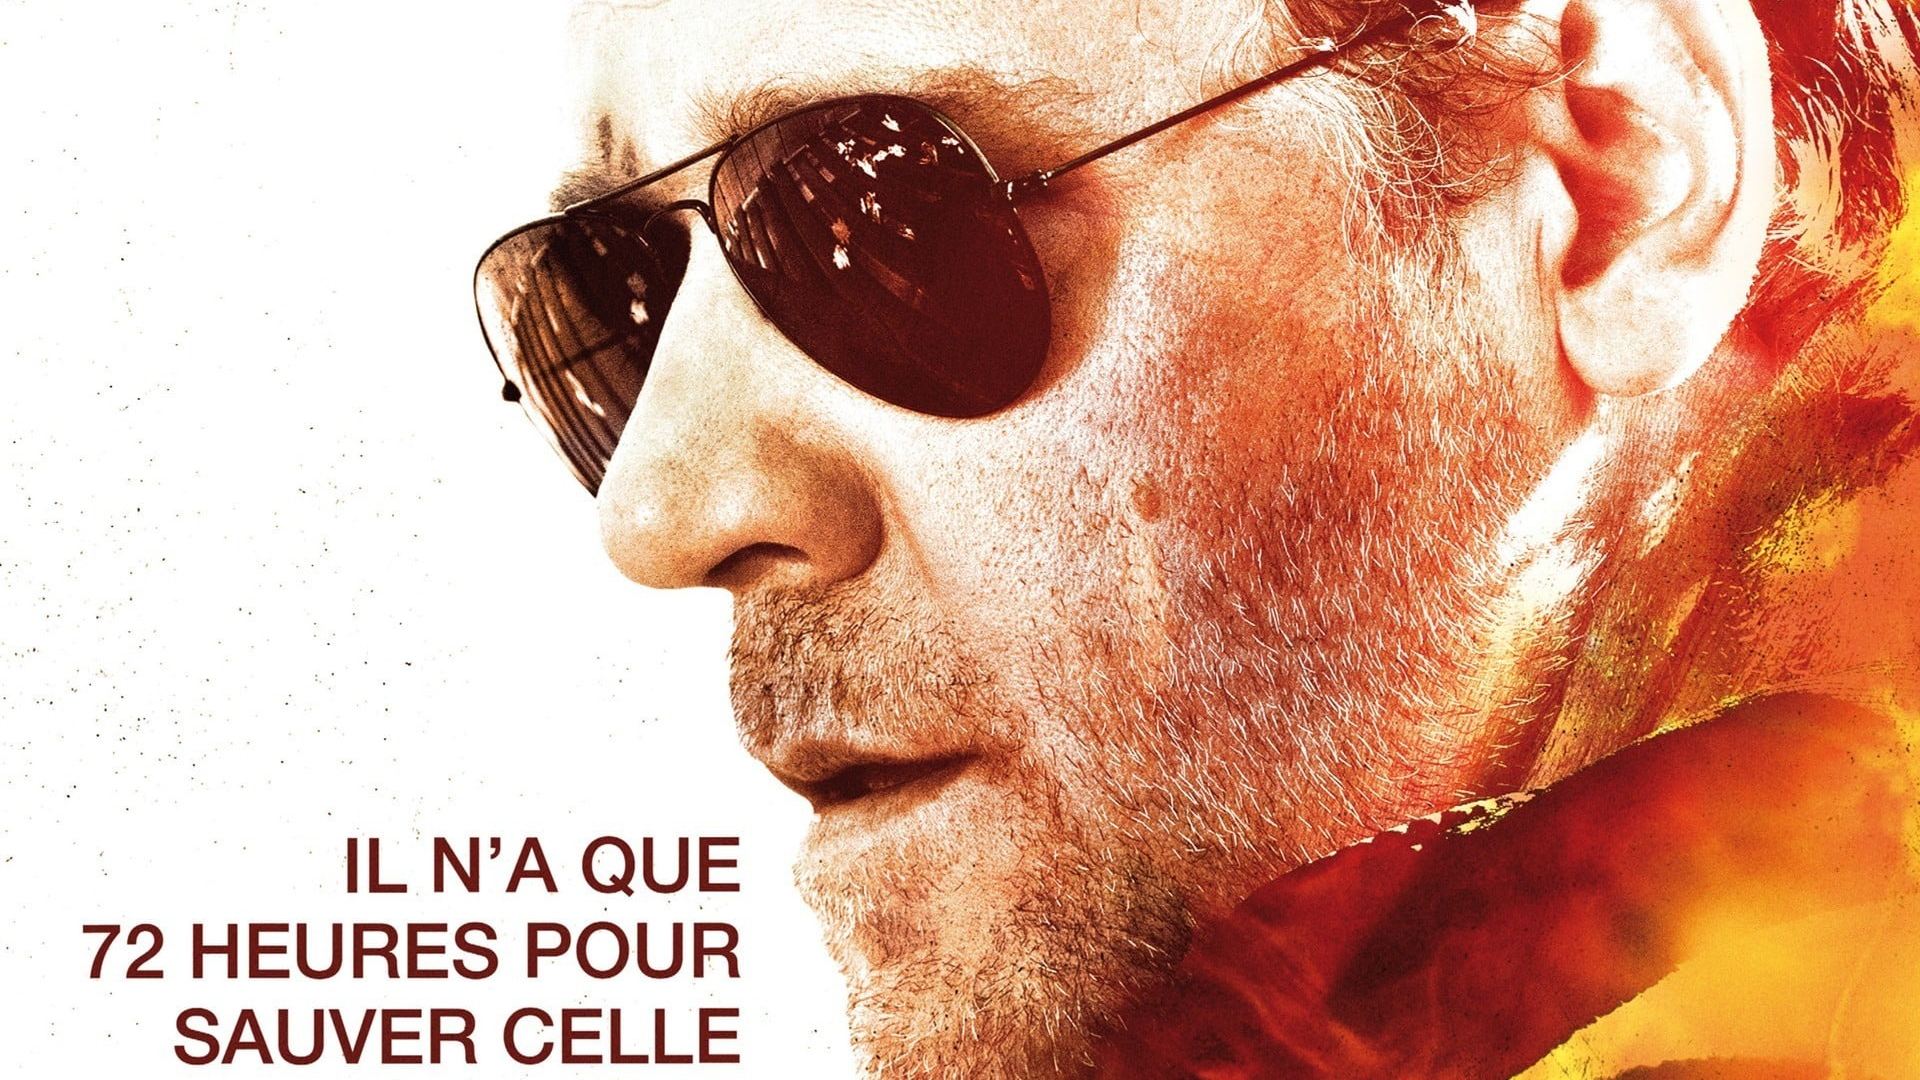 The Next Three Days Movie Poster Russell Crowe John Brennan Lionsgate